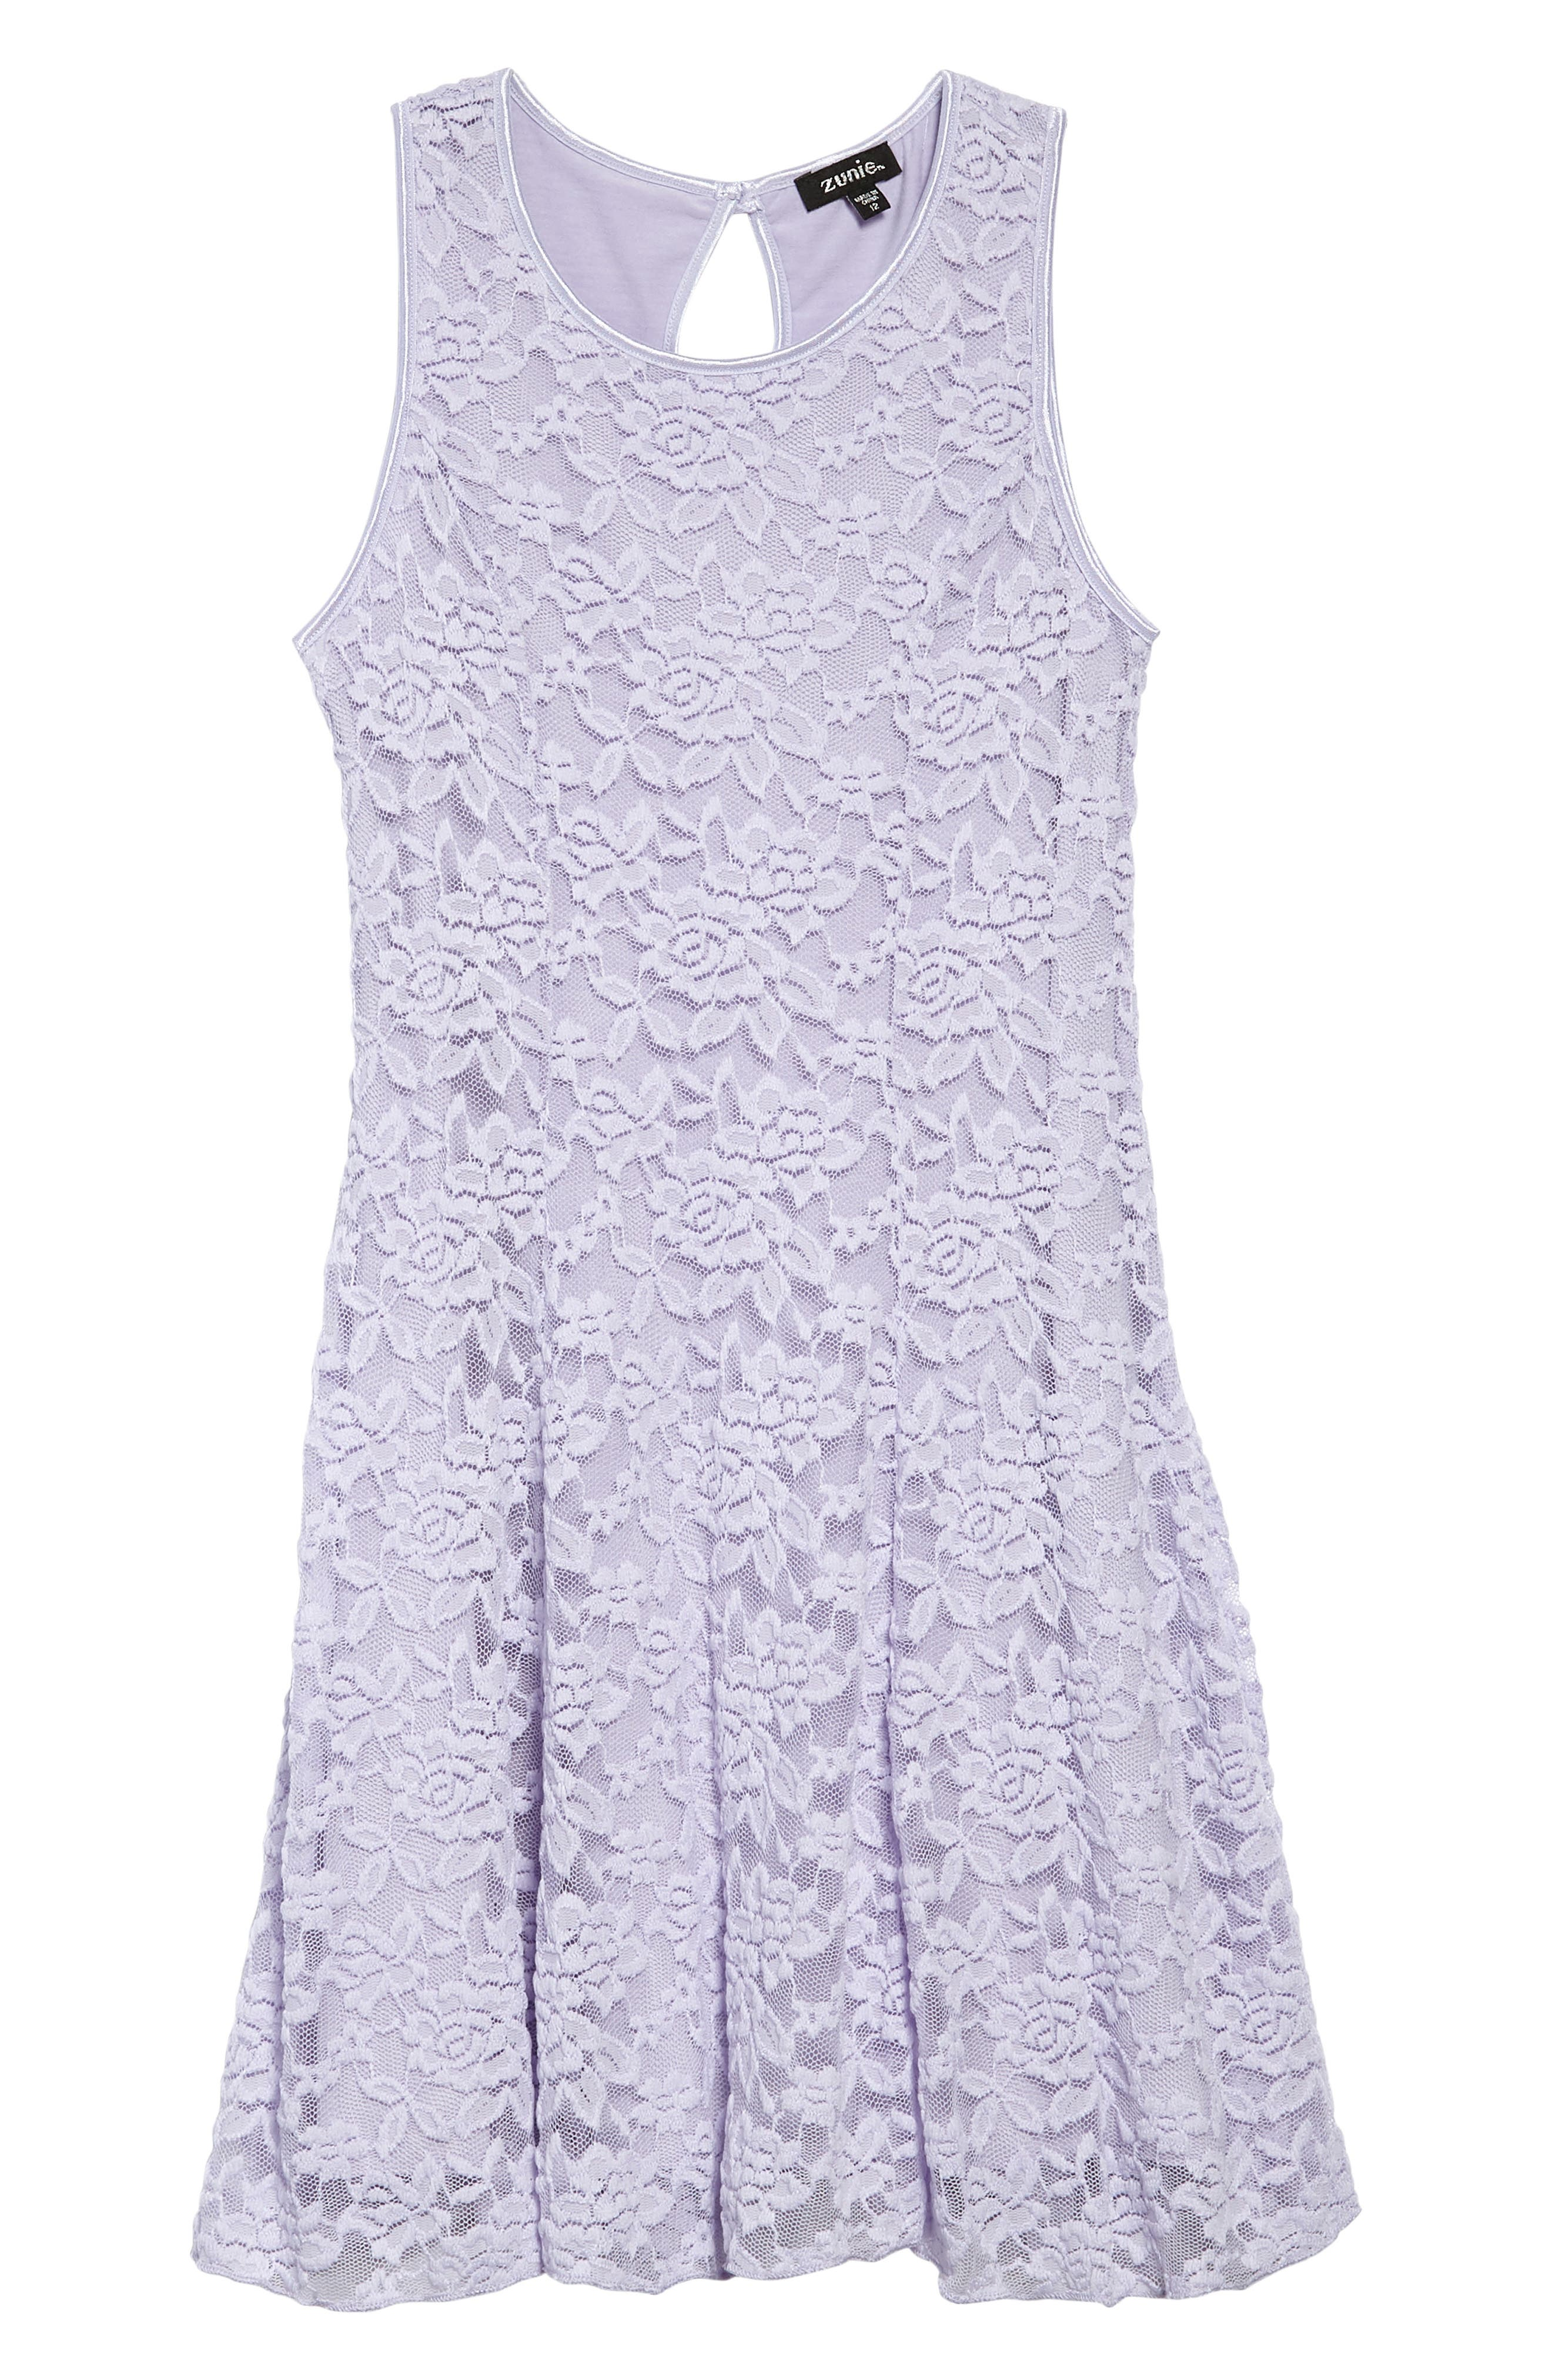 Floral Lace Sleeveless Dress,                             Main thumbnail 1, color,                             Lilac